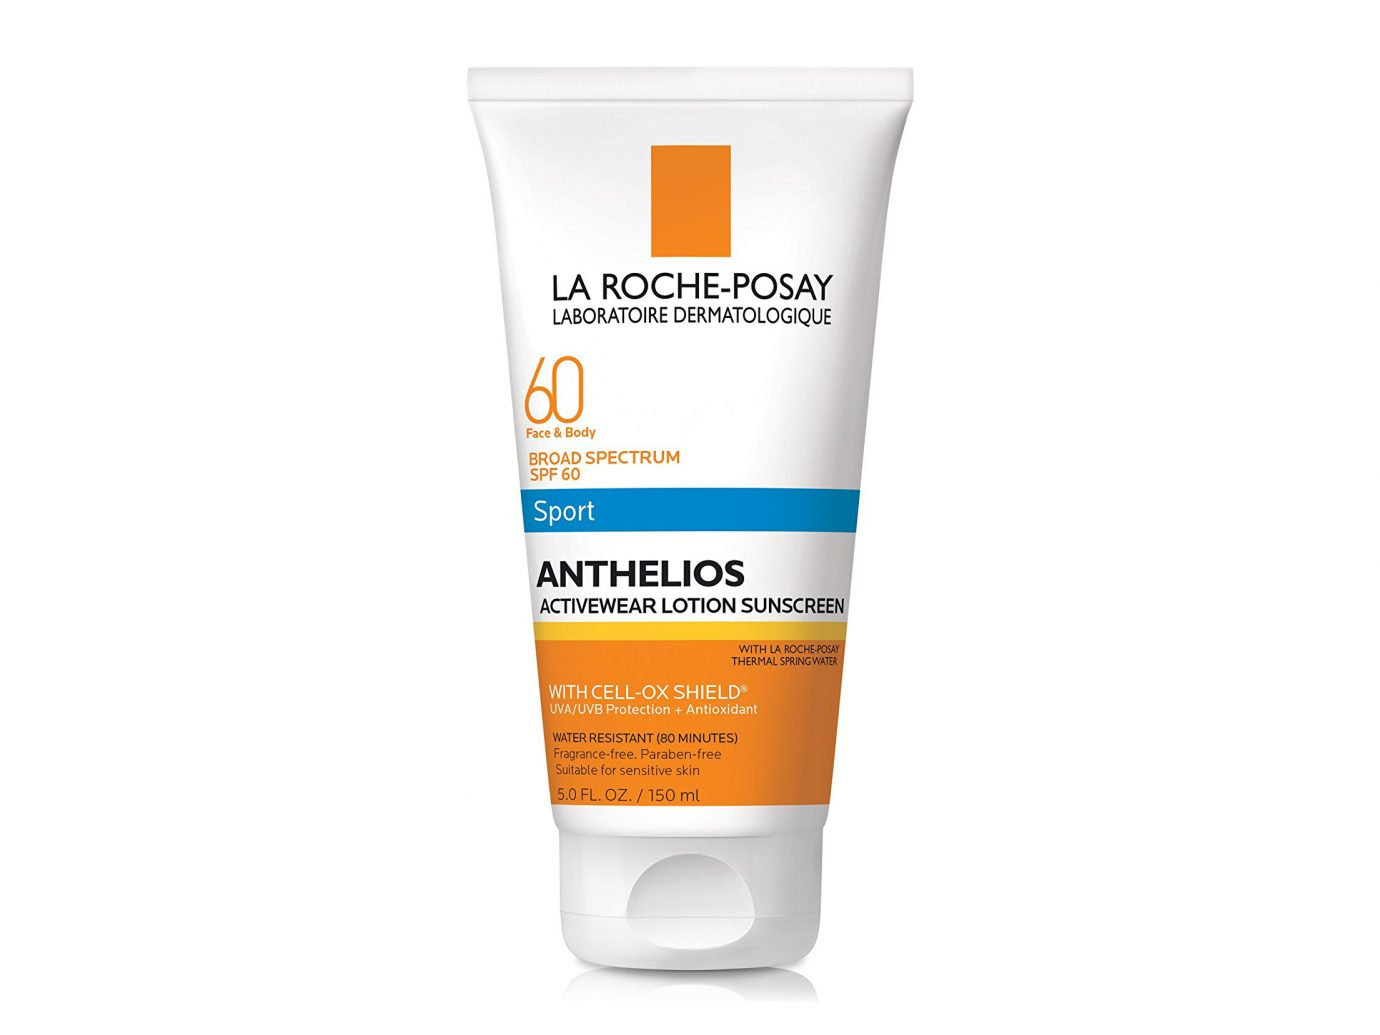 La Roche-Posay Anthelios Sunscreen